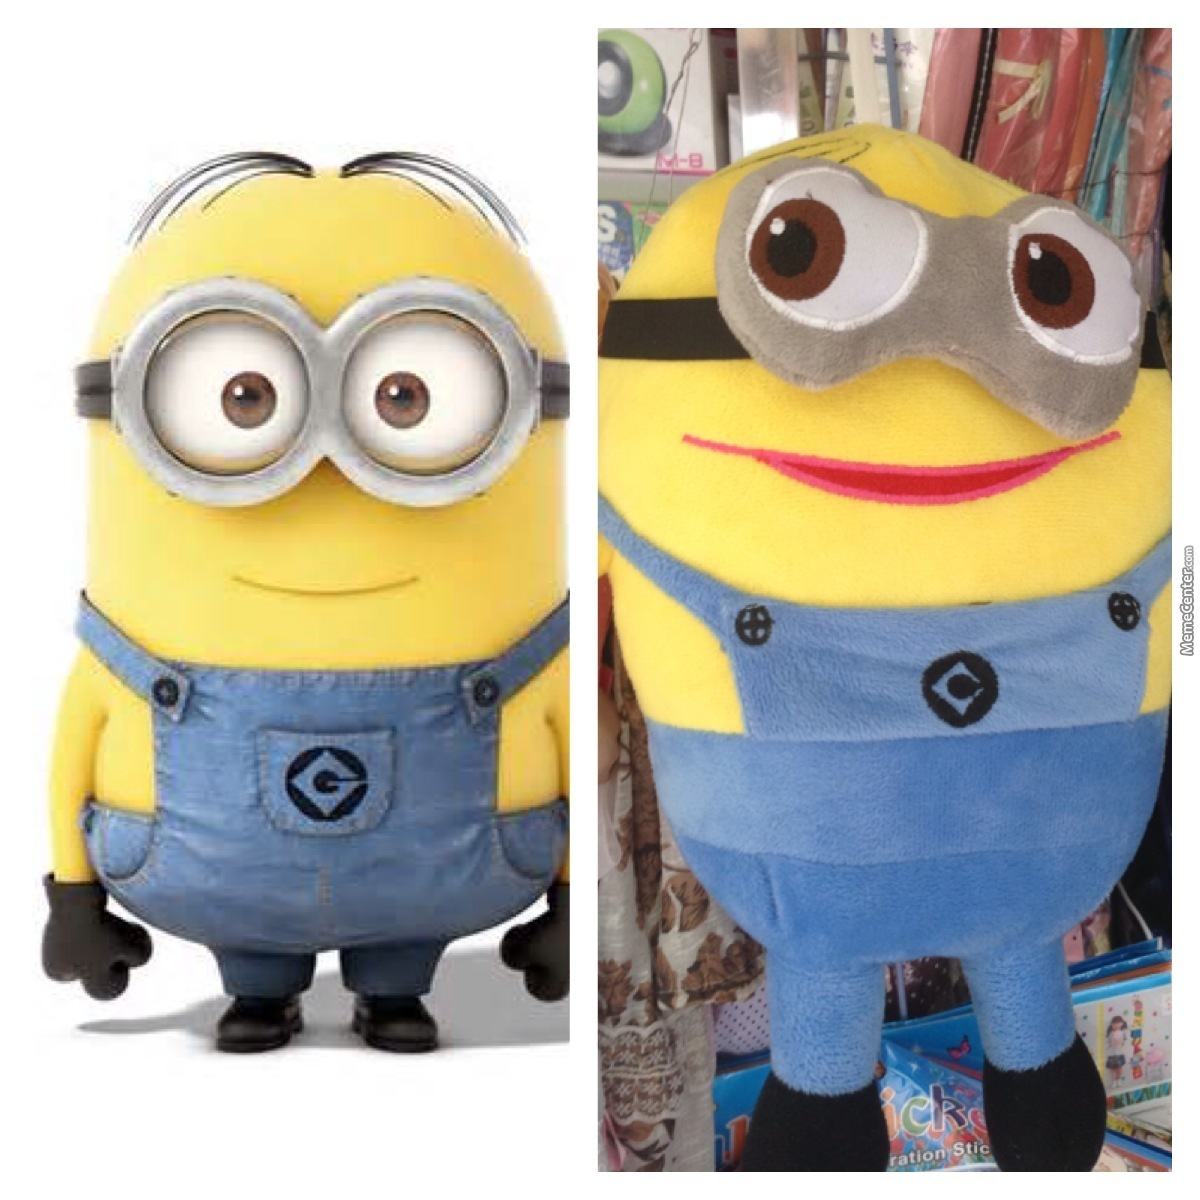 Nailed It Xp,any Way Who Want This Minion With Nerd Glass?lol